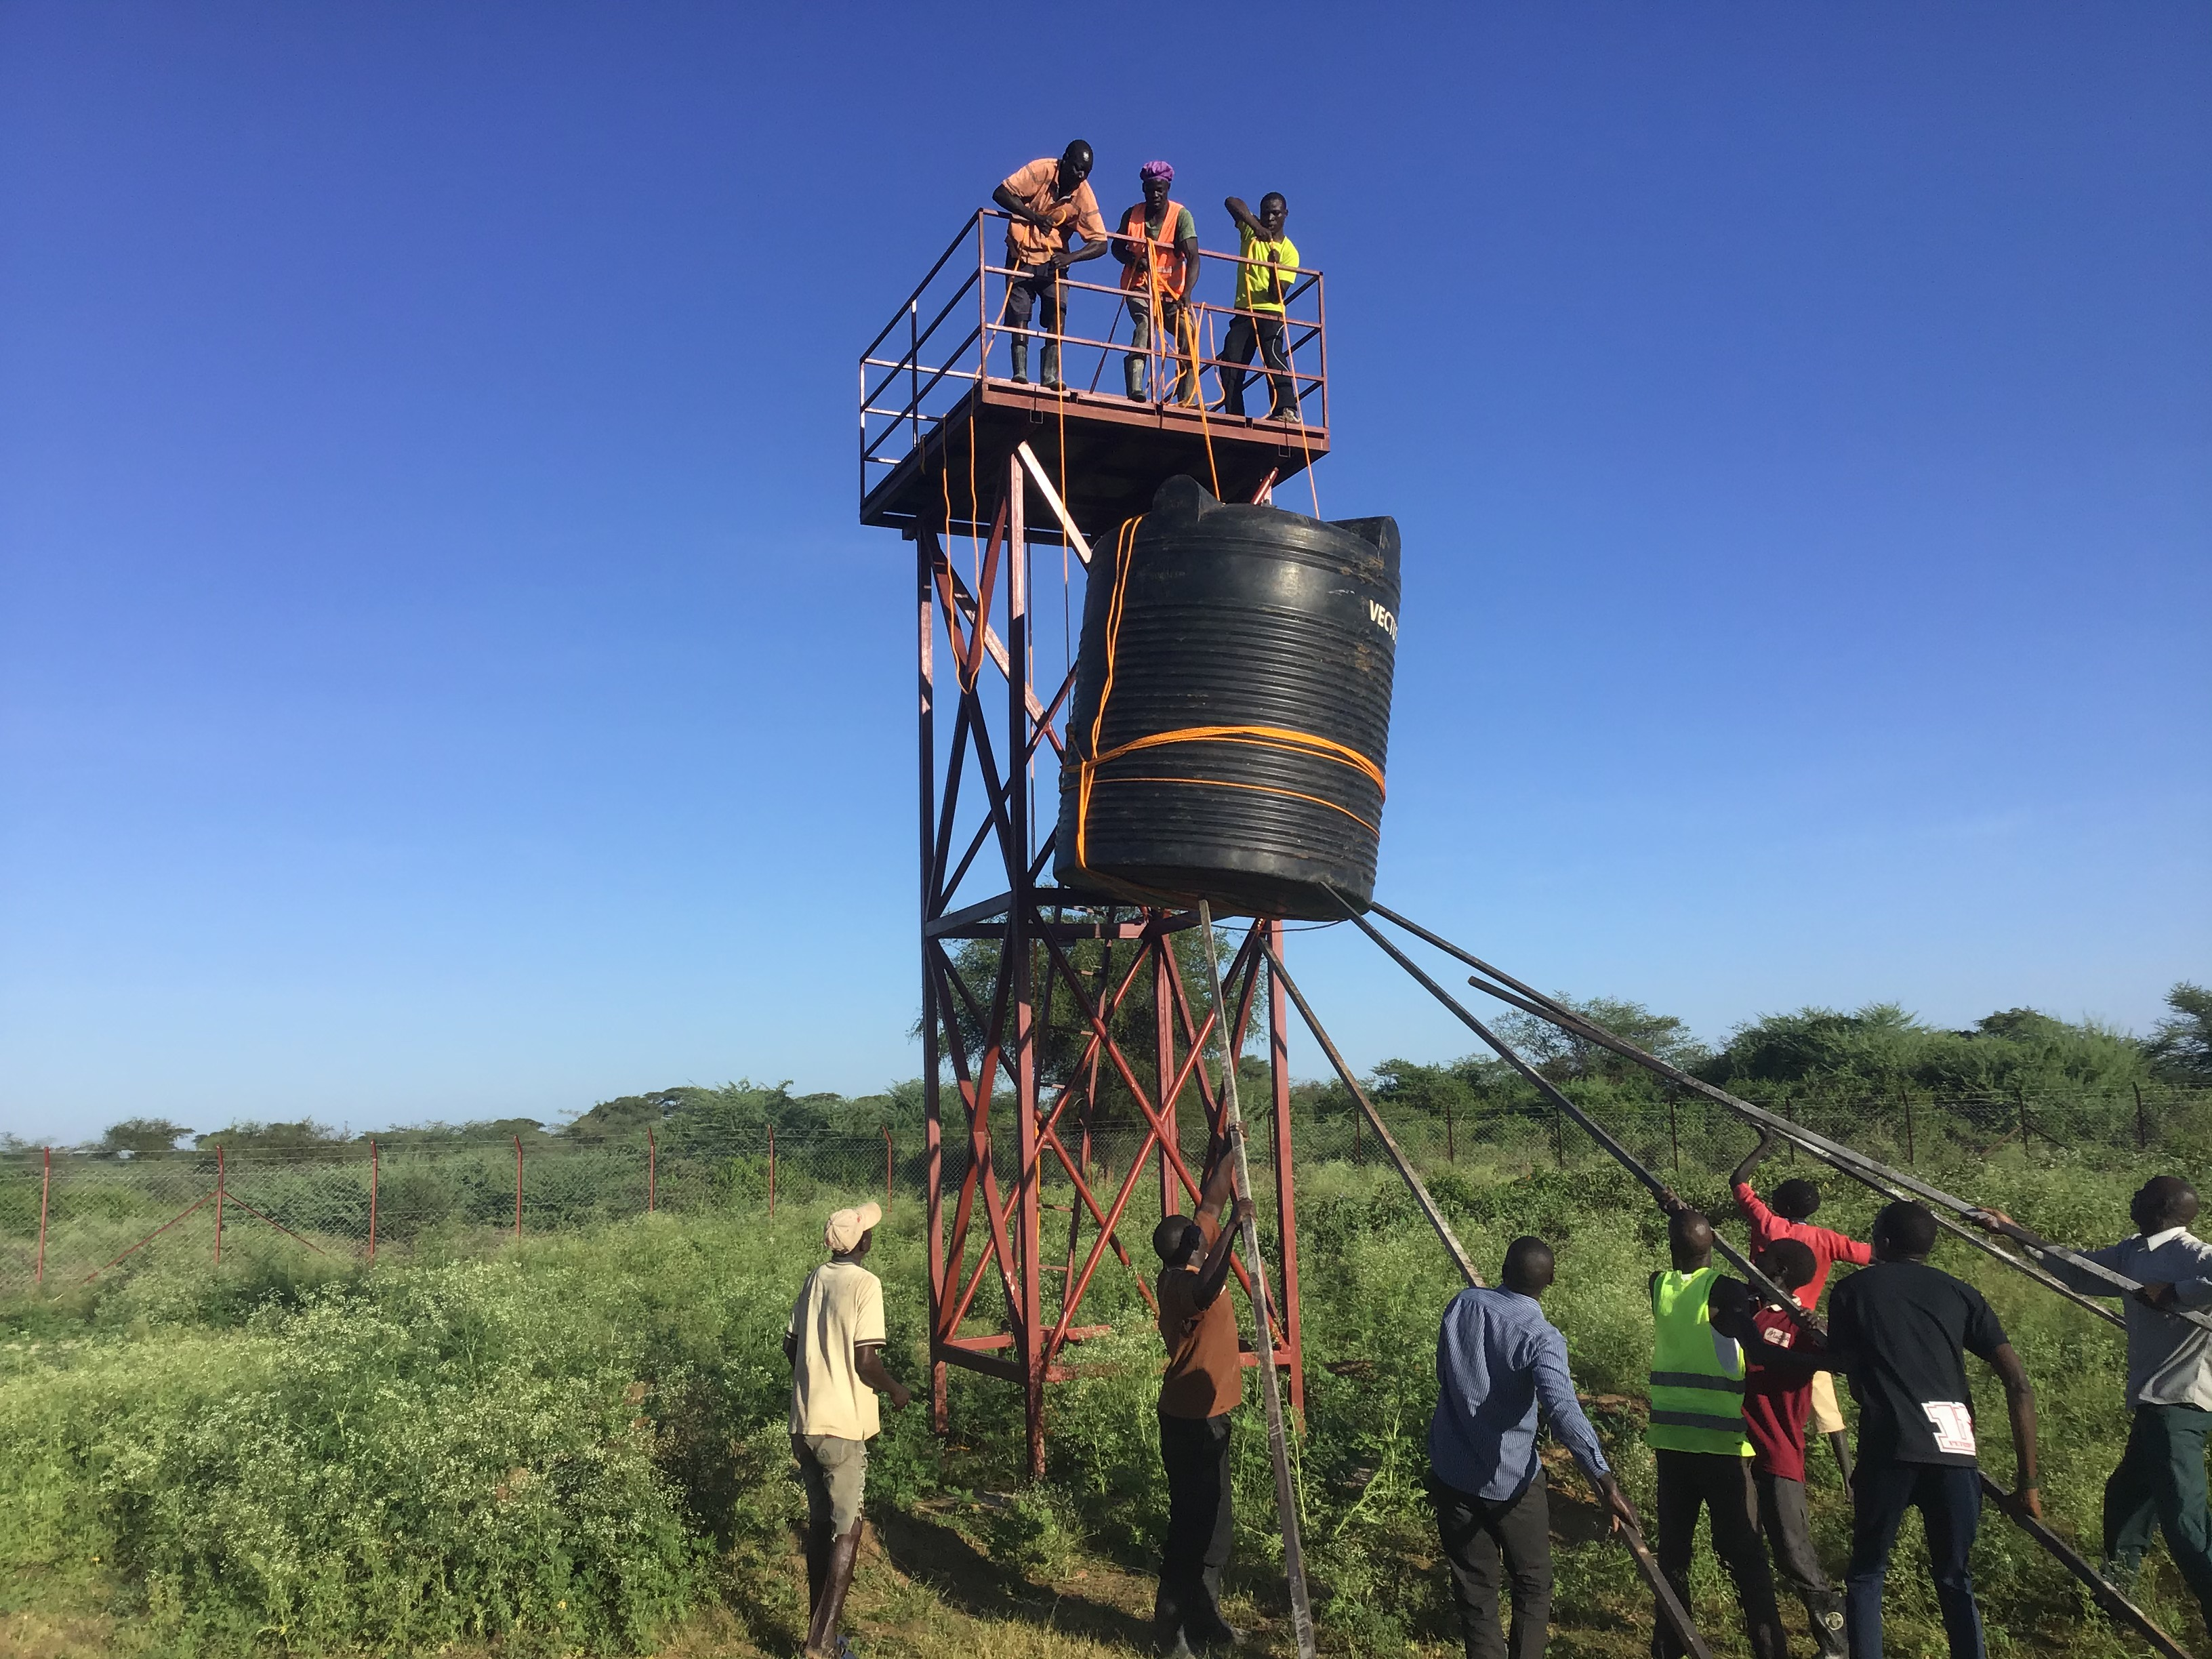 Construction of the water tower by the local people of Riwota